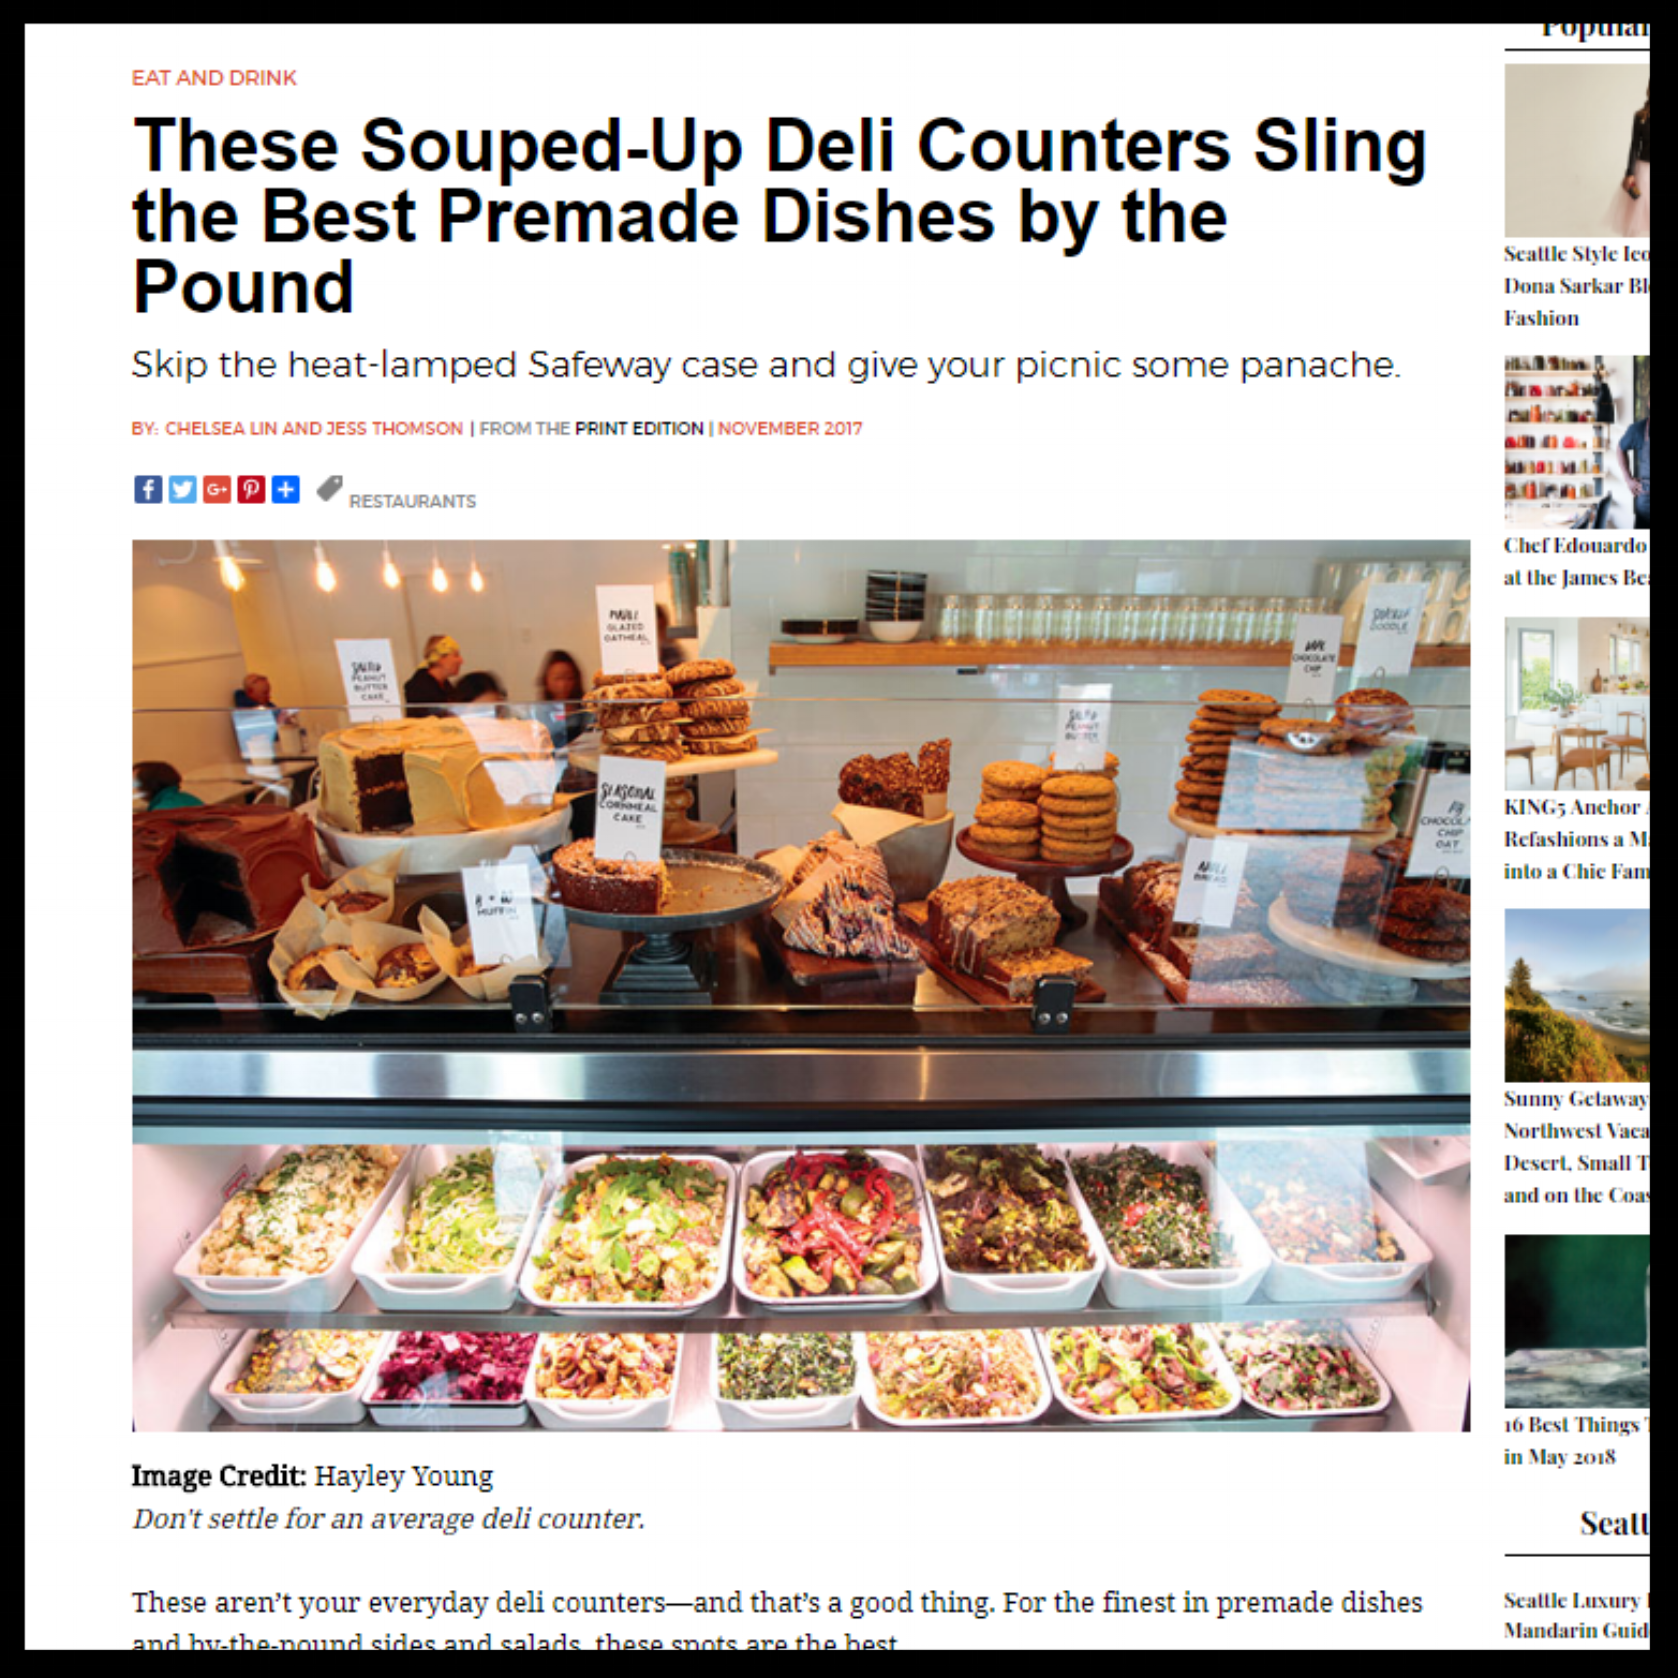 """Seattle Magazine   November 2017  """"These Souped-Up Deli Counters Sling the Best Premade Dishes by the Pound"""""""